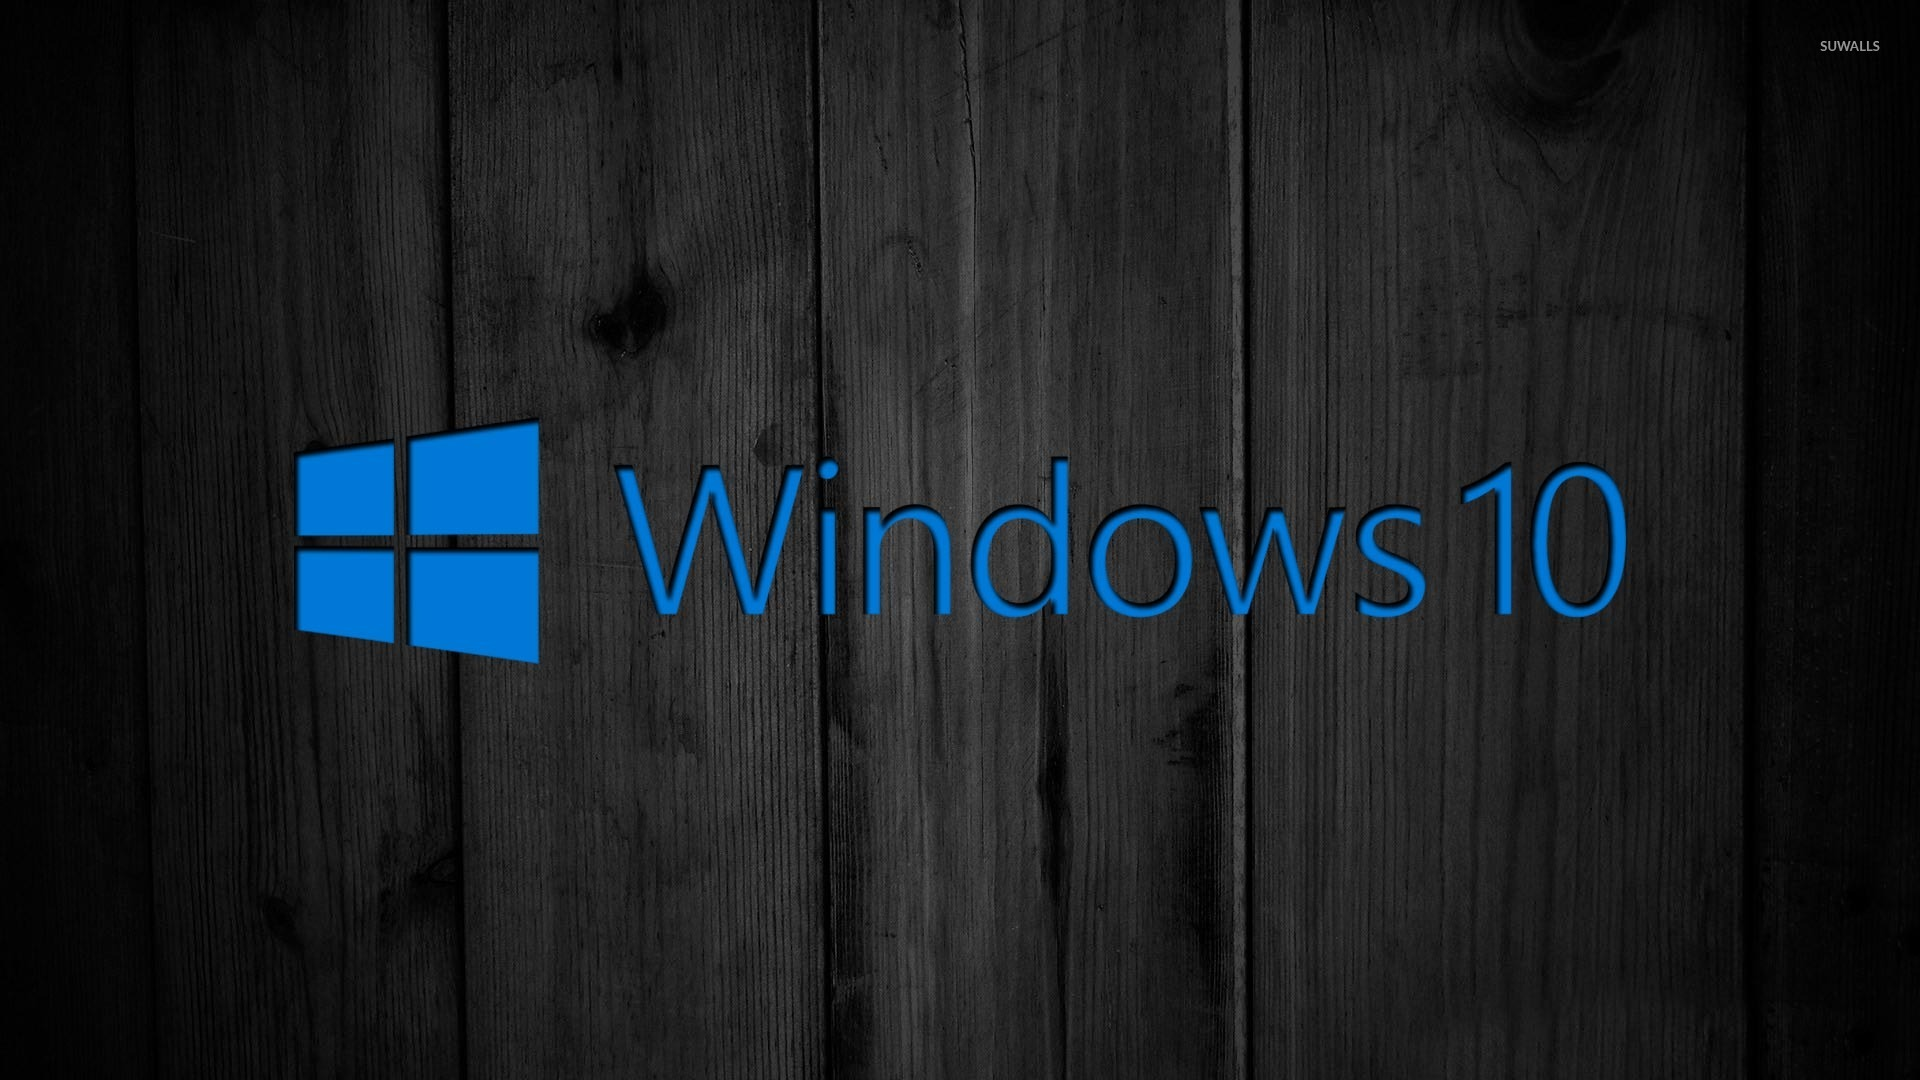 Windows 10 On Black Wooden Panels 2 Wallpaper